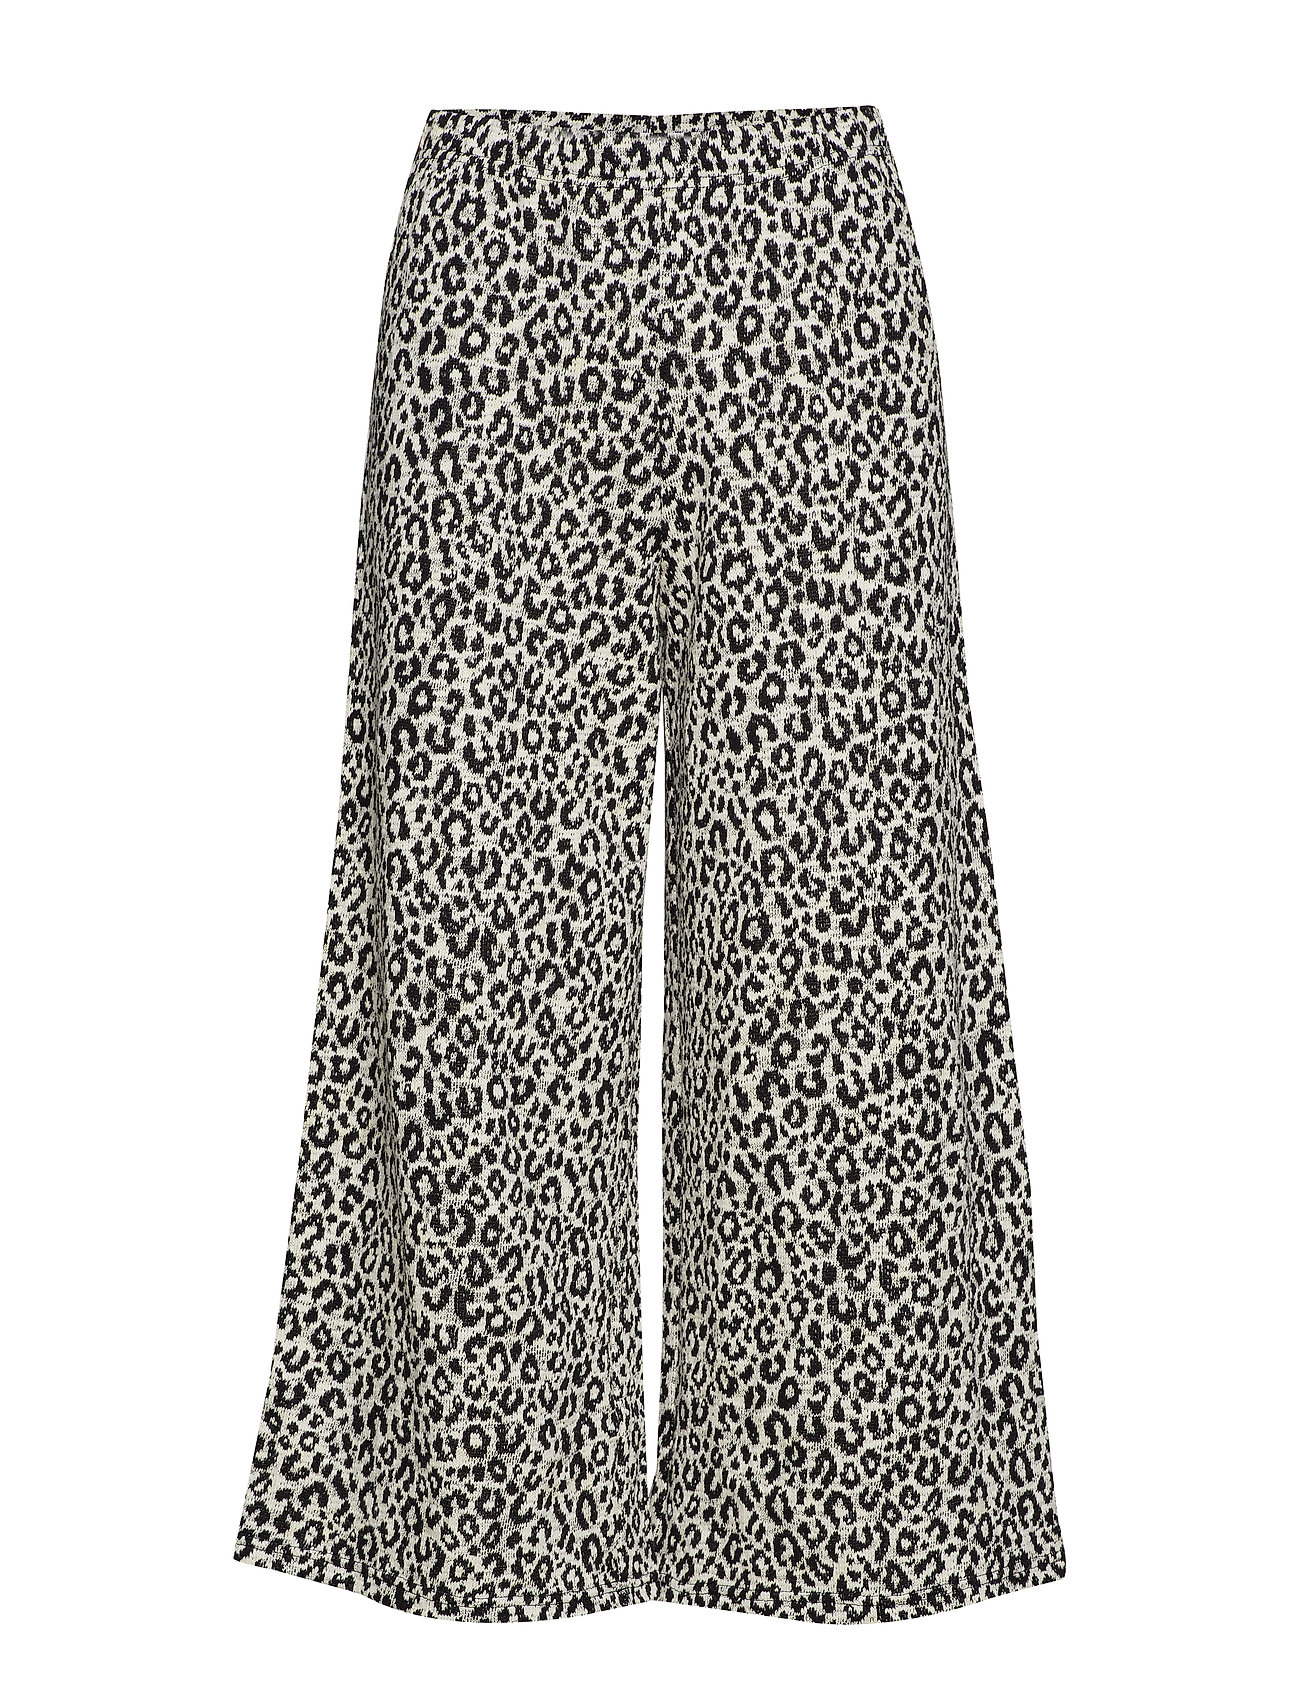 Diana Orving Cropped Trousers - LEO